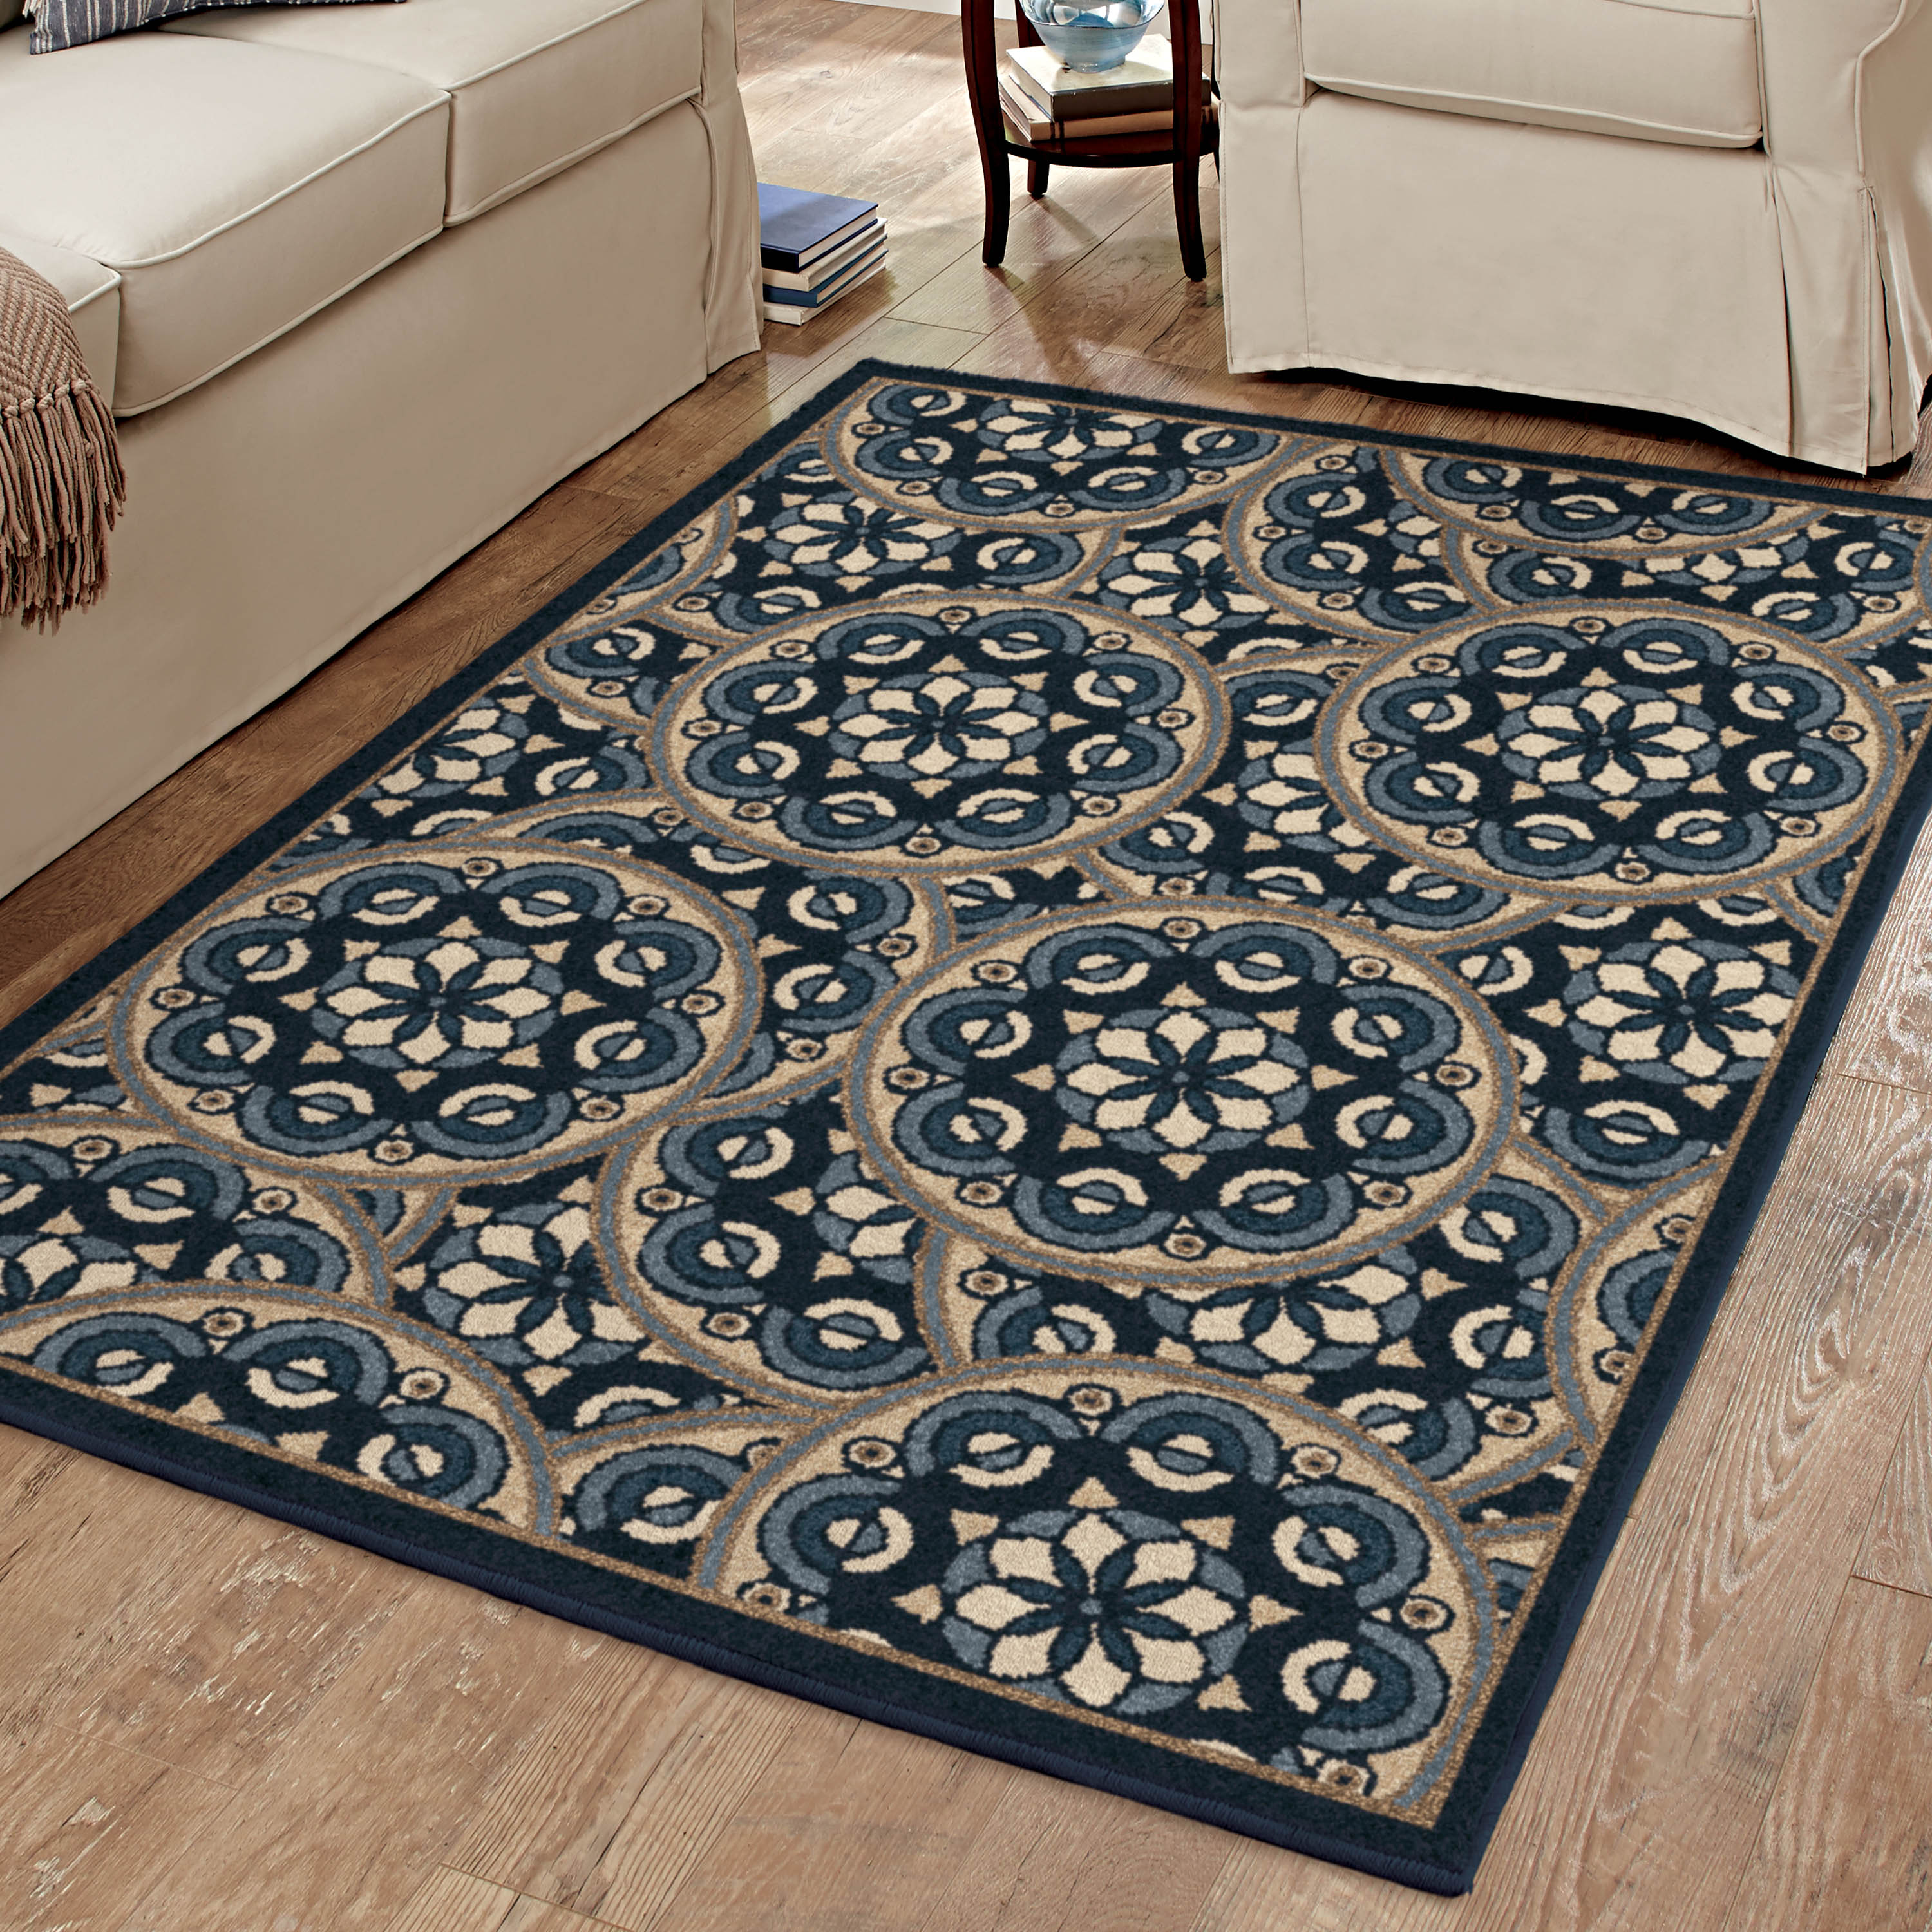 Better Homes and Gardens Area Rug and Runner